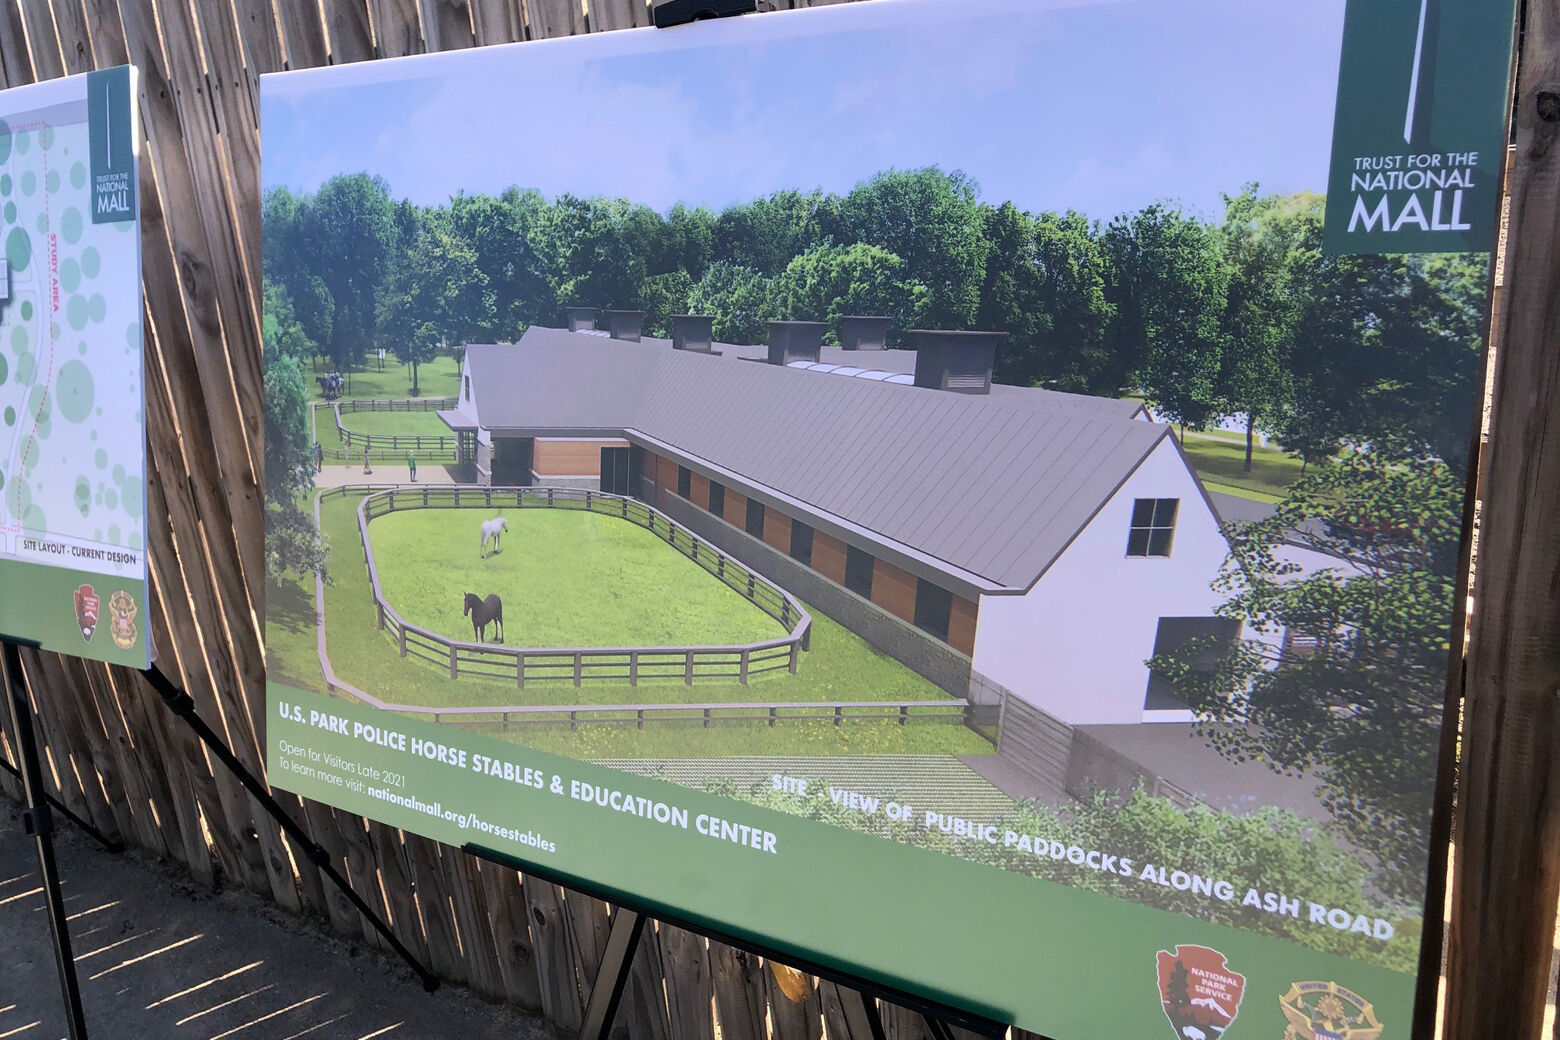 rendering of horse stable on National Mall